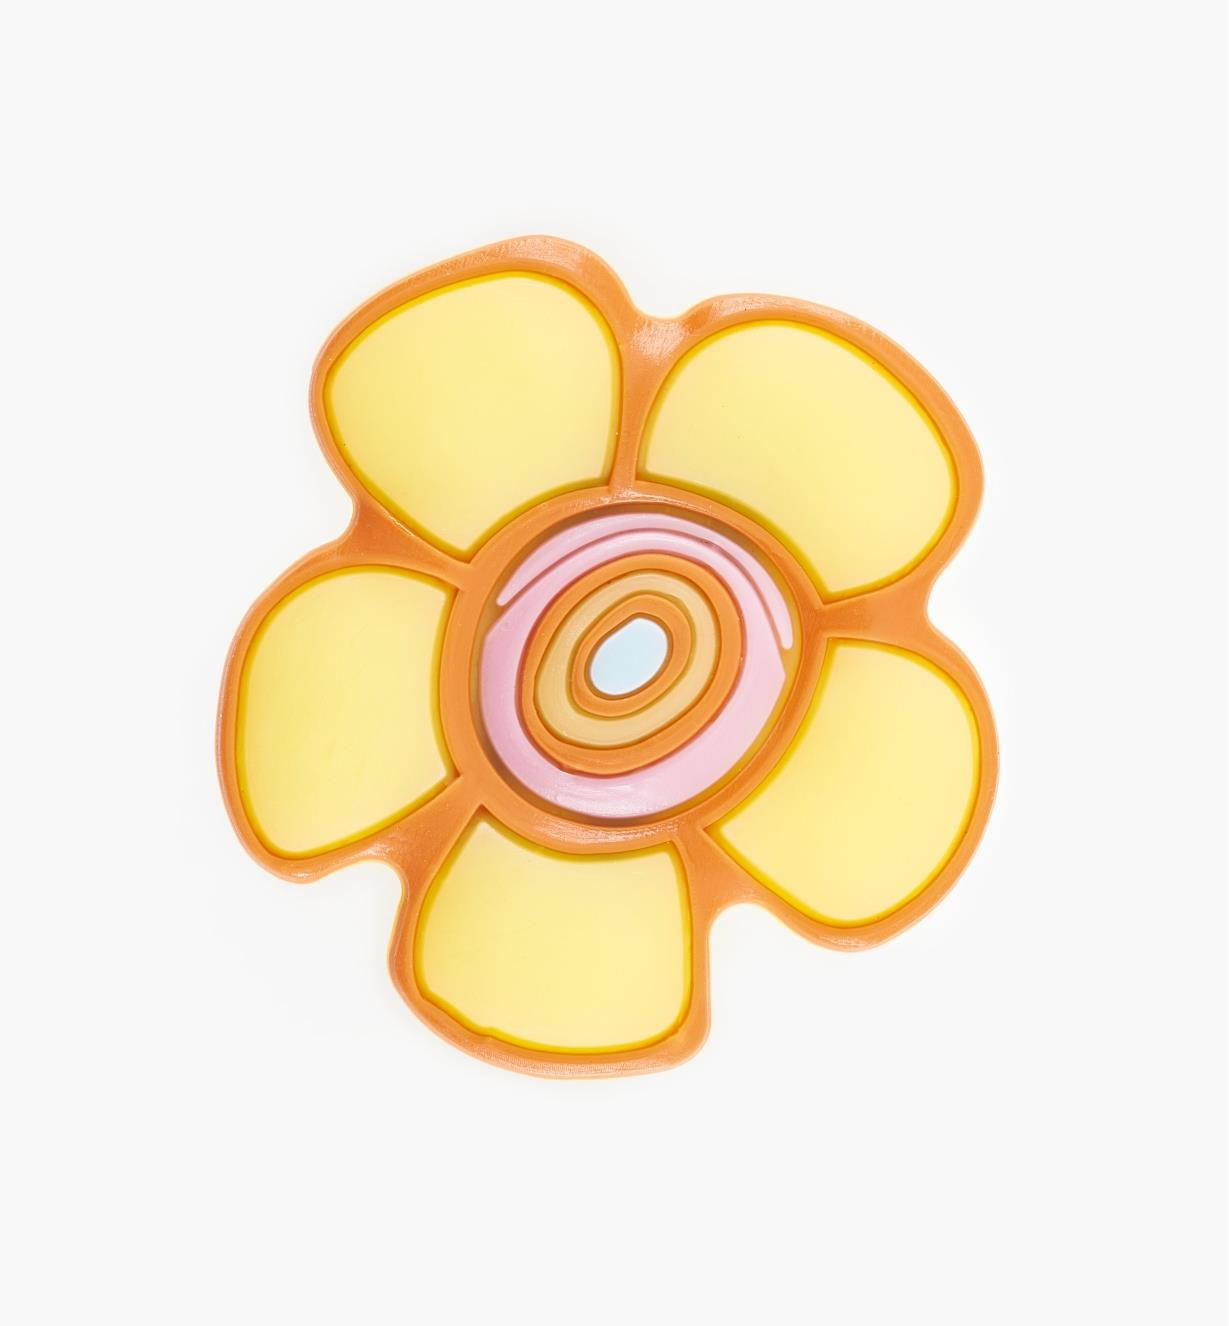 00W5617 - Yellow Flower Knob